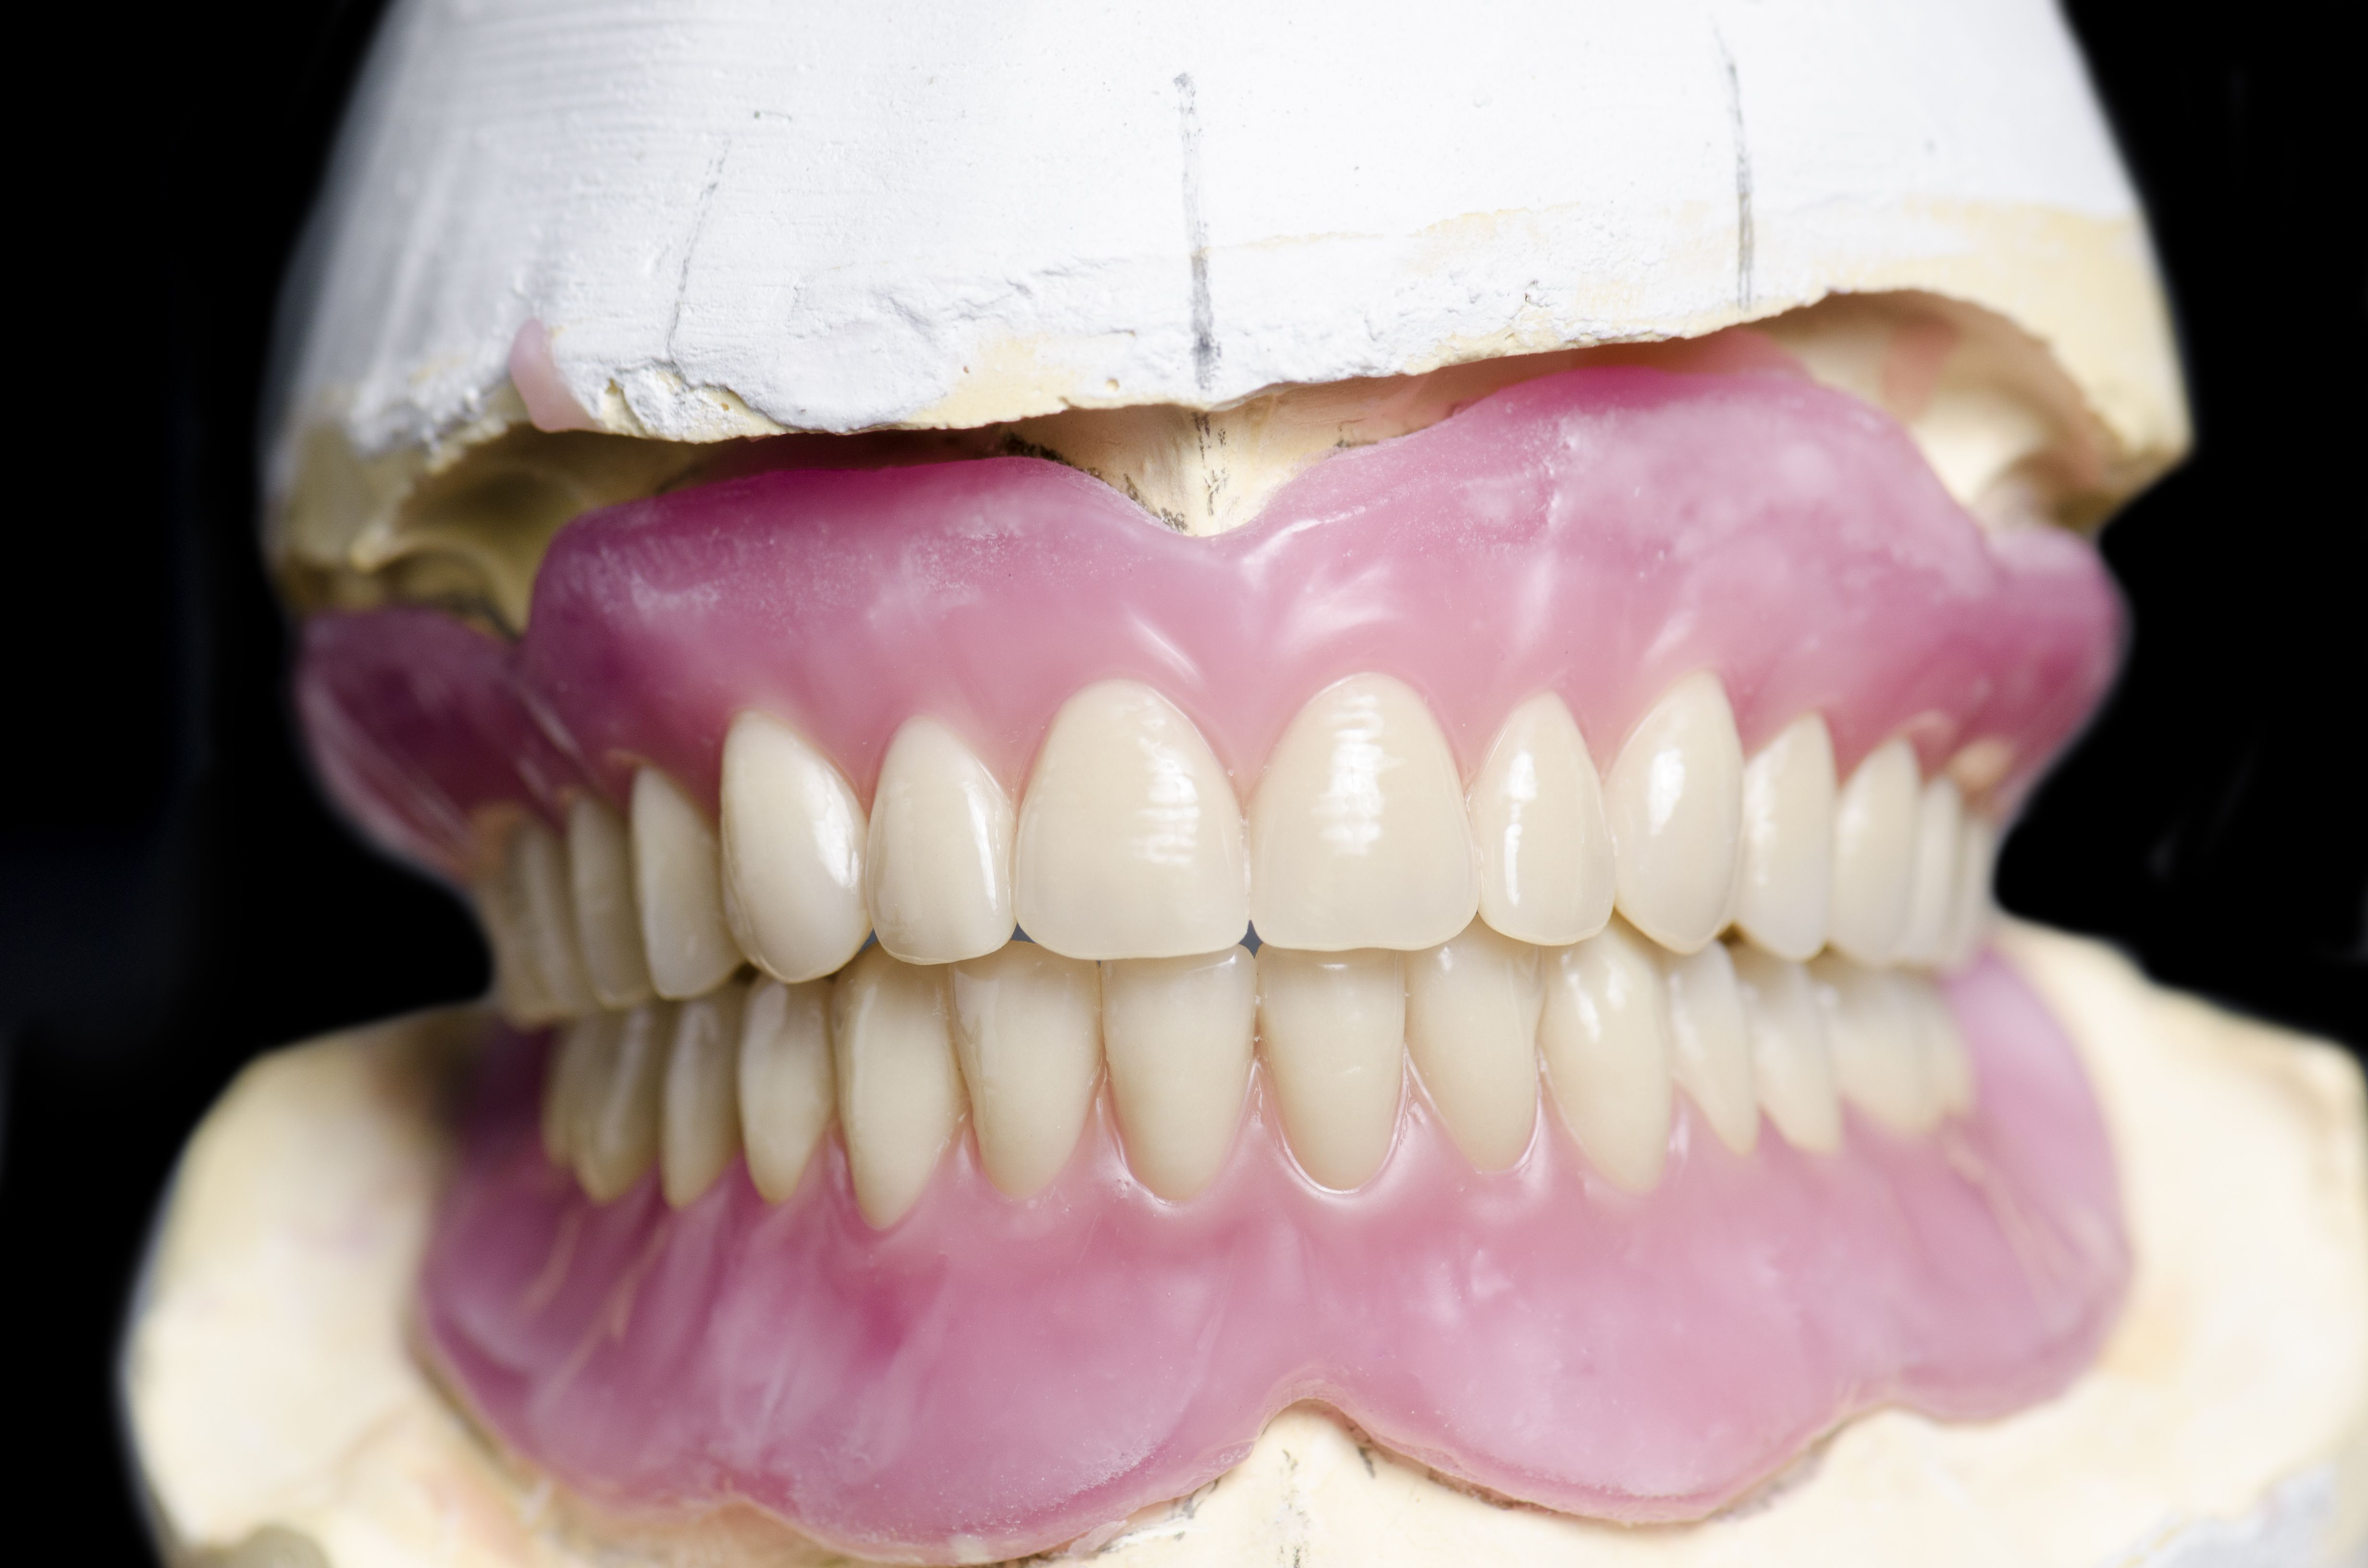 Overbite Overjet Differences